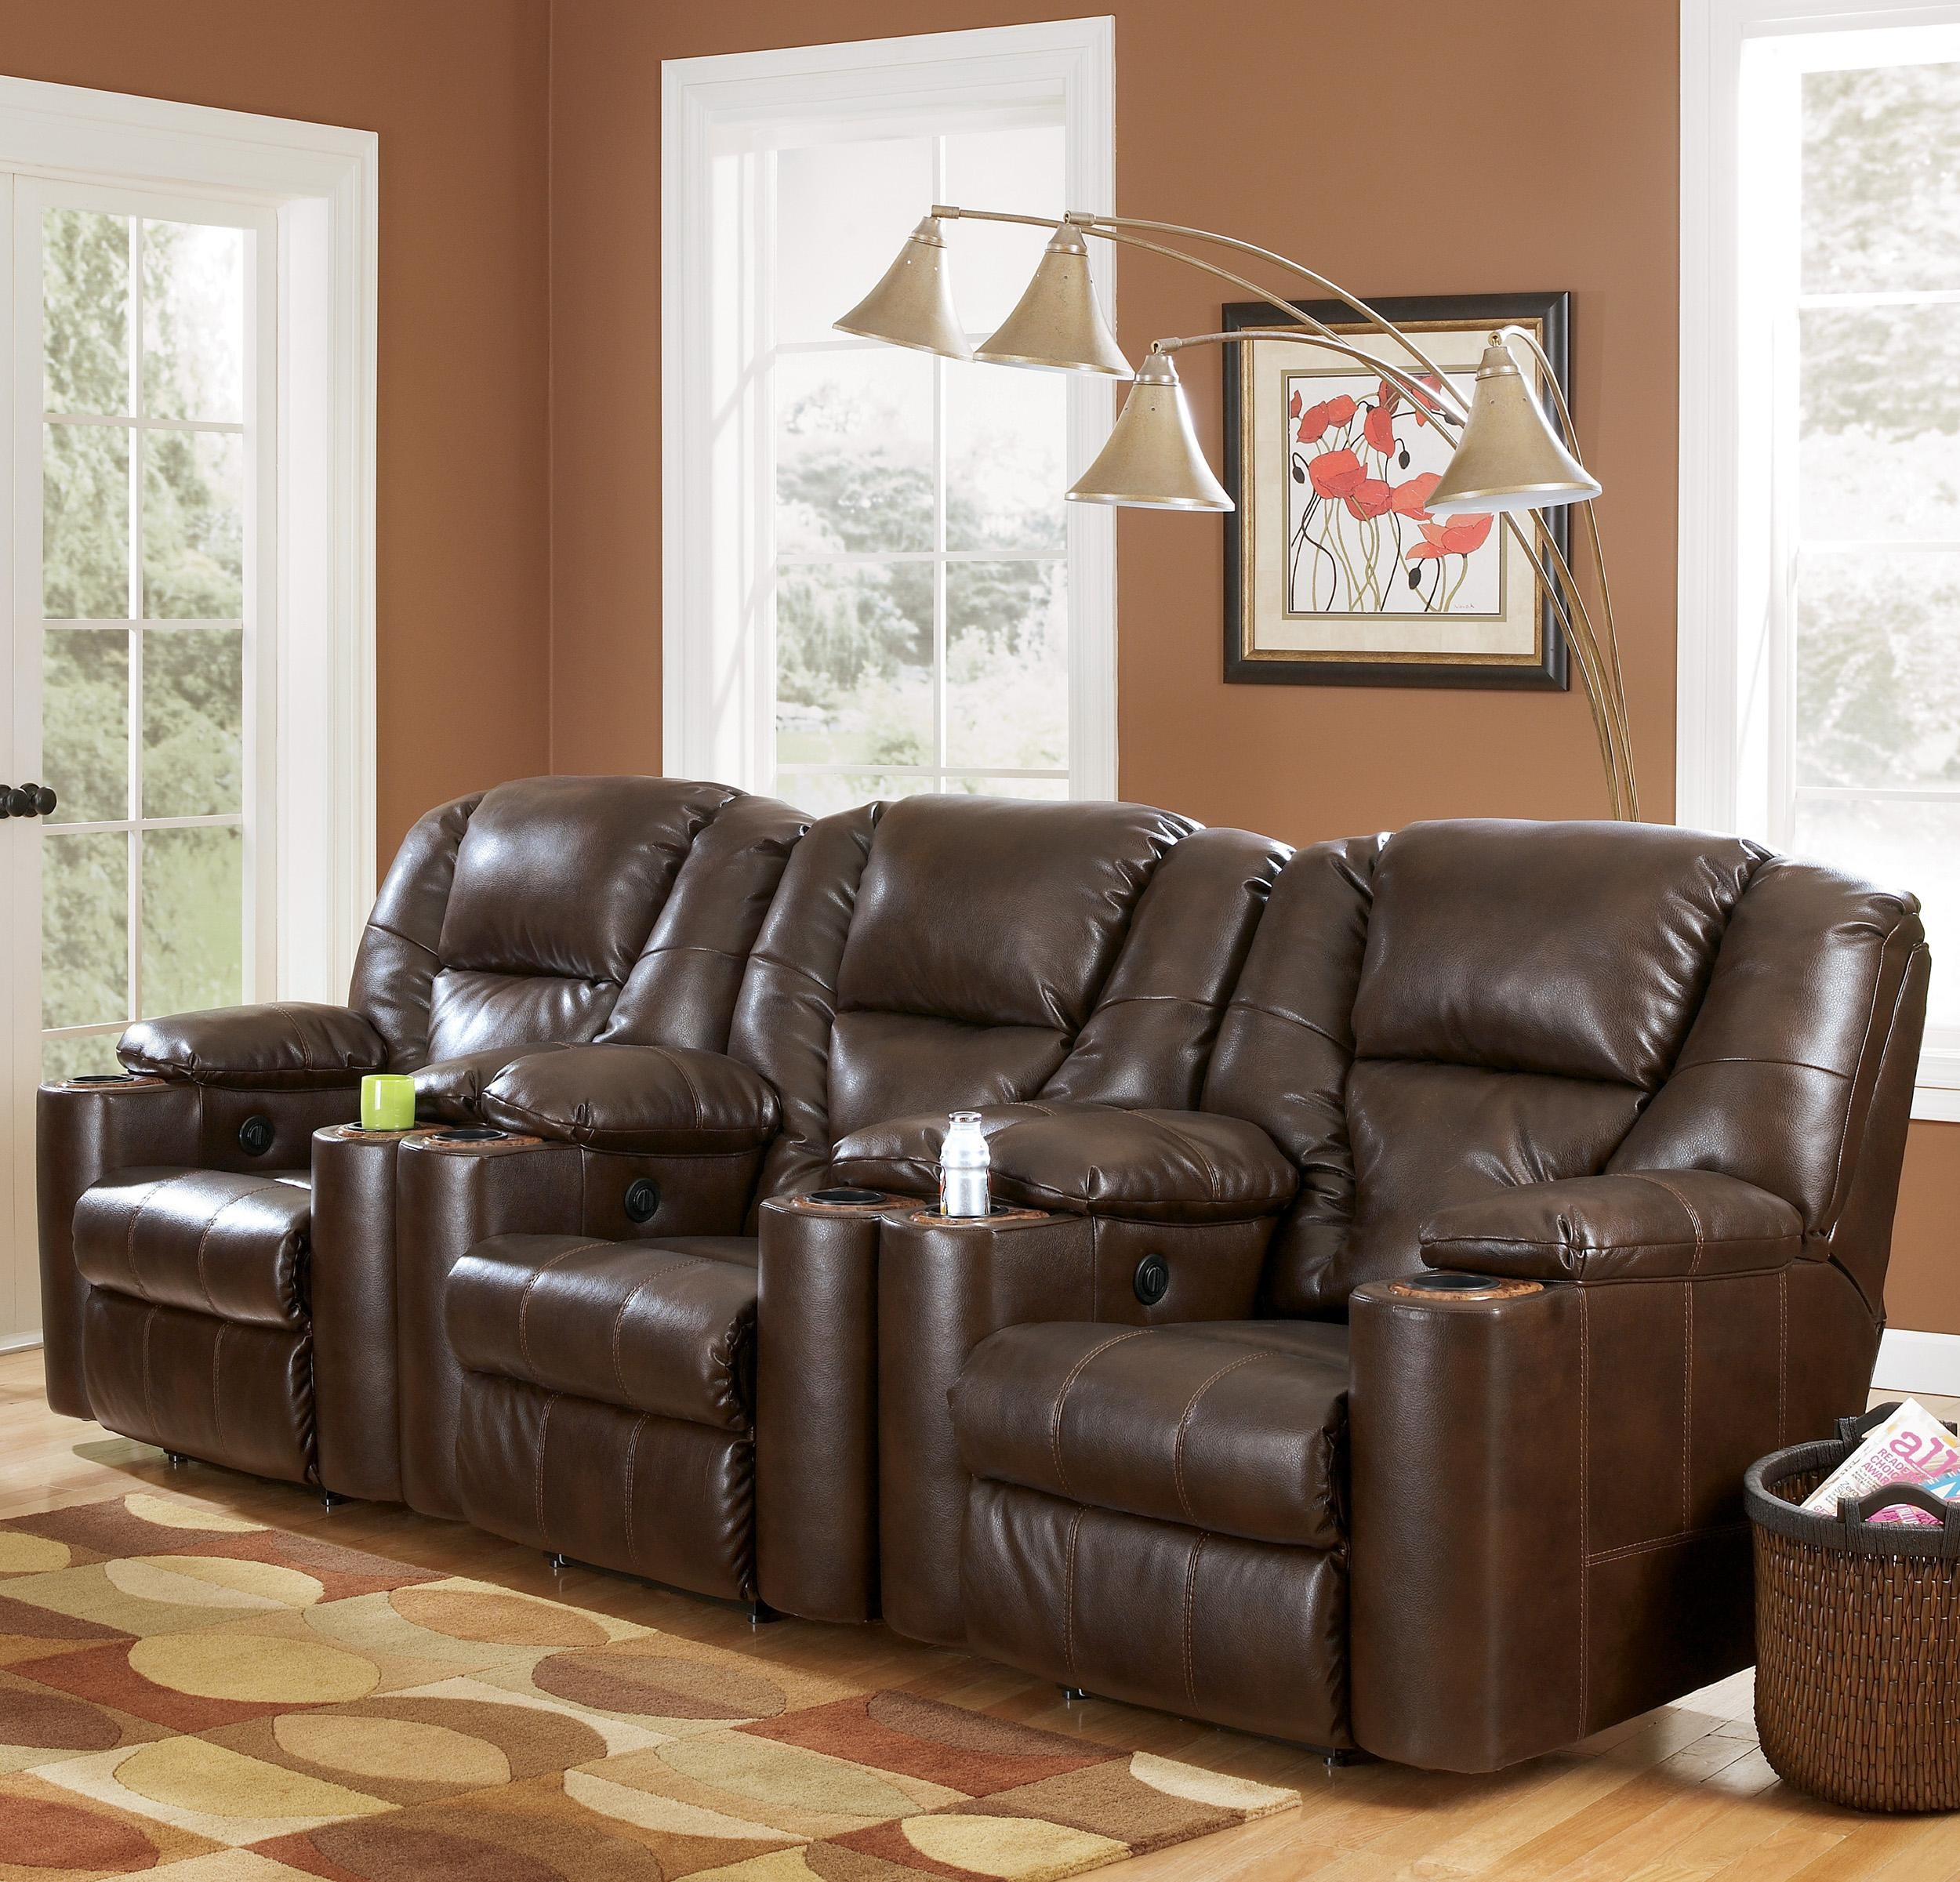 Exceptional Signature Design By Ashley Paramount DuraBlend®   Brindle Power 3 Piece  Reclining Home Theater